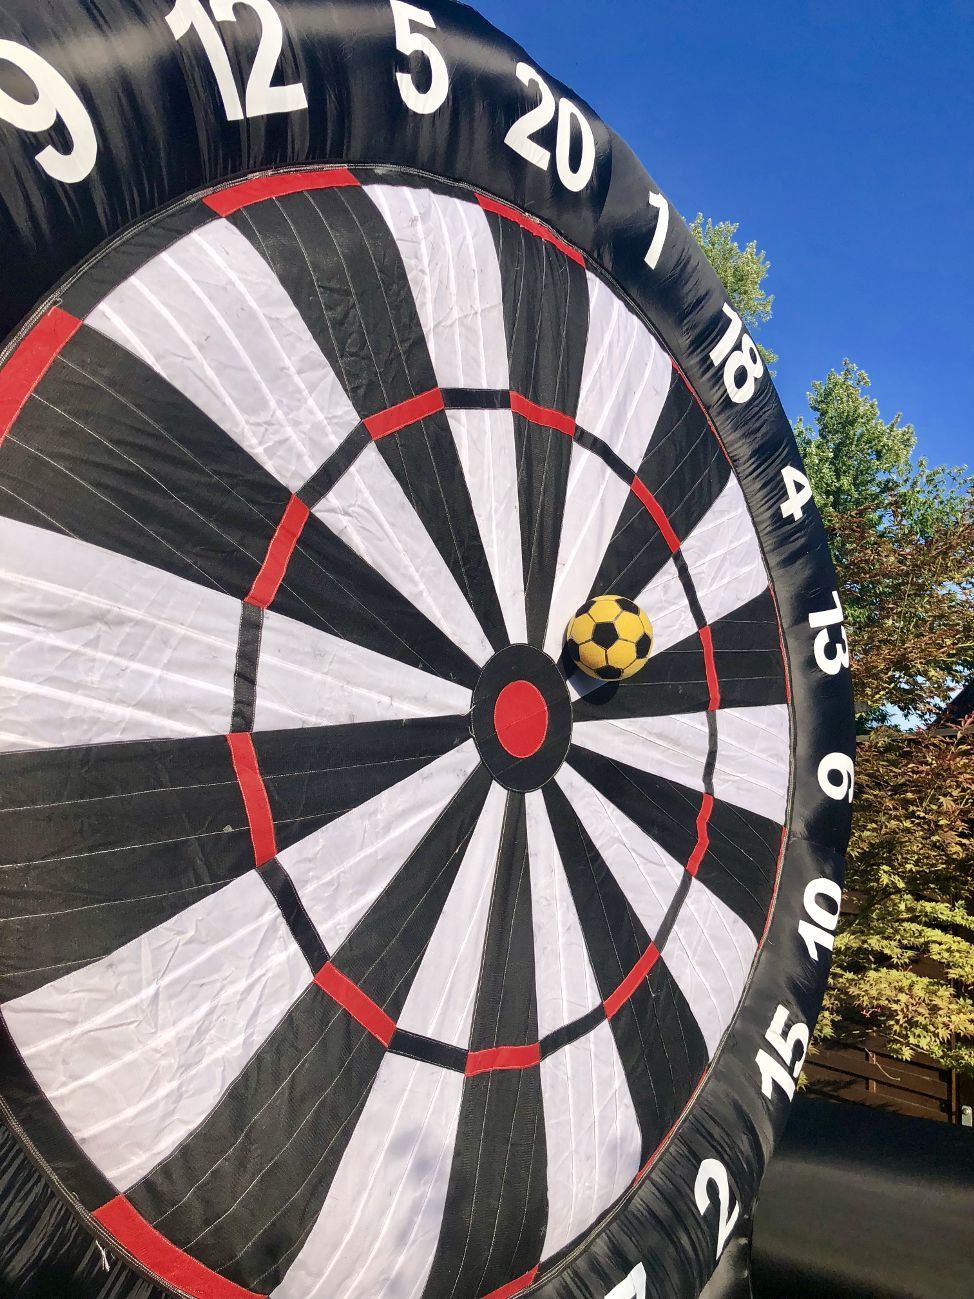 Xxl Fussball Darts Fussball Darts Soccer Darts Soccer